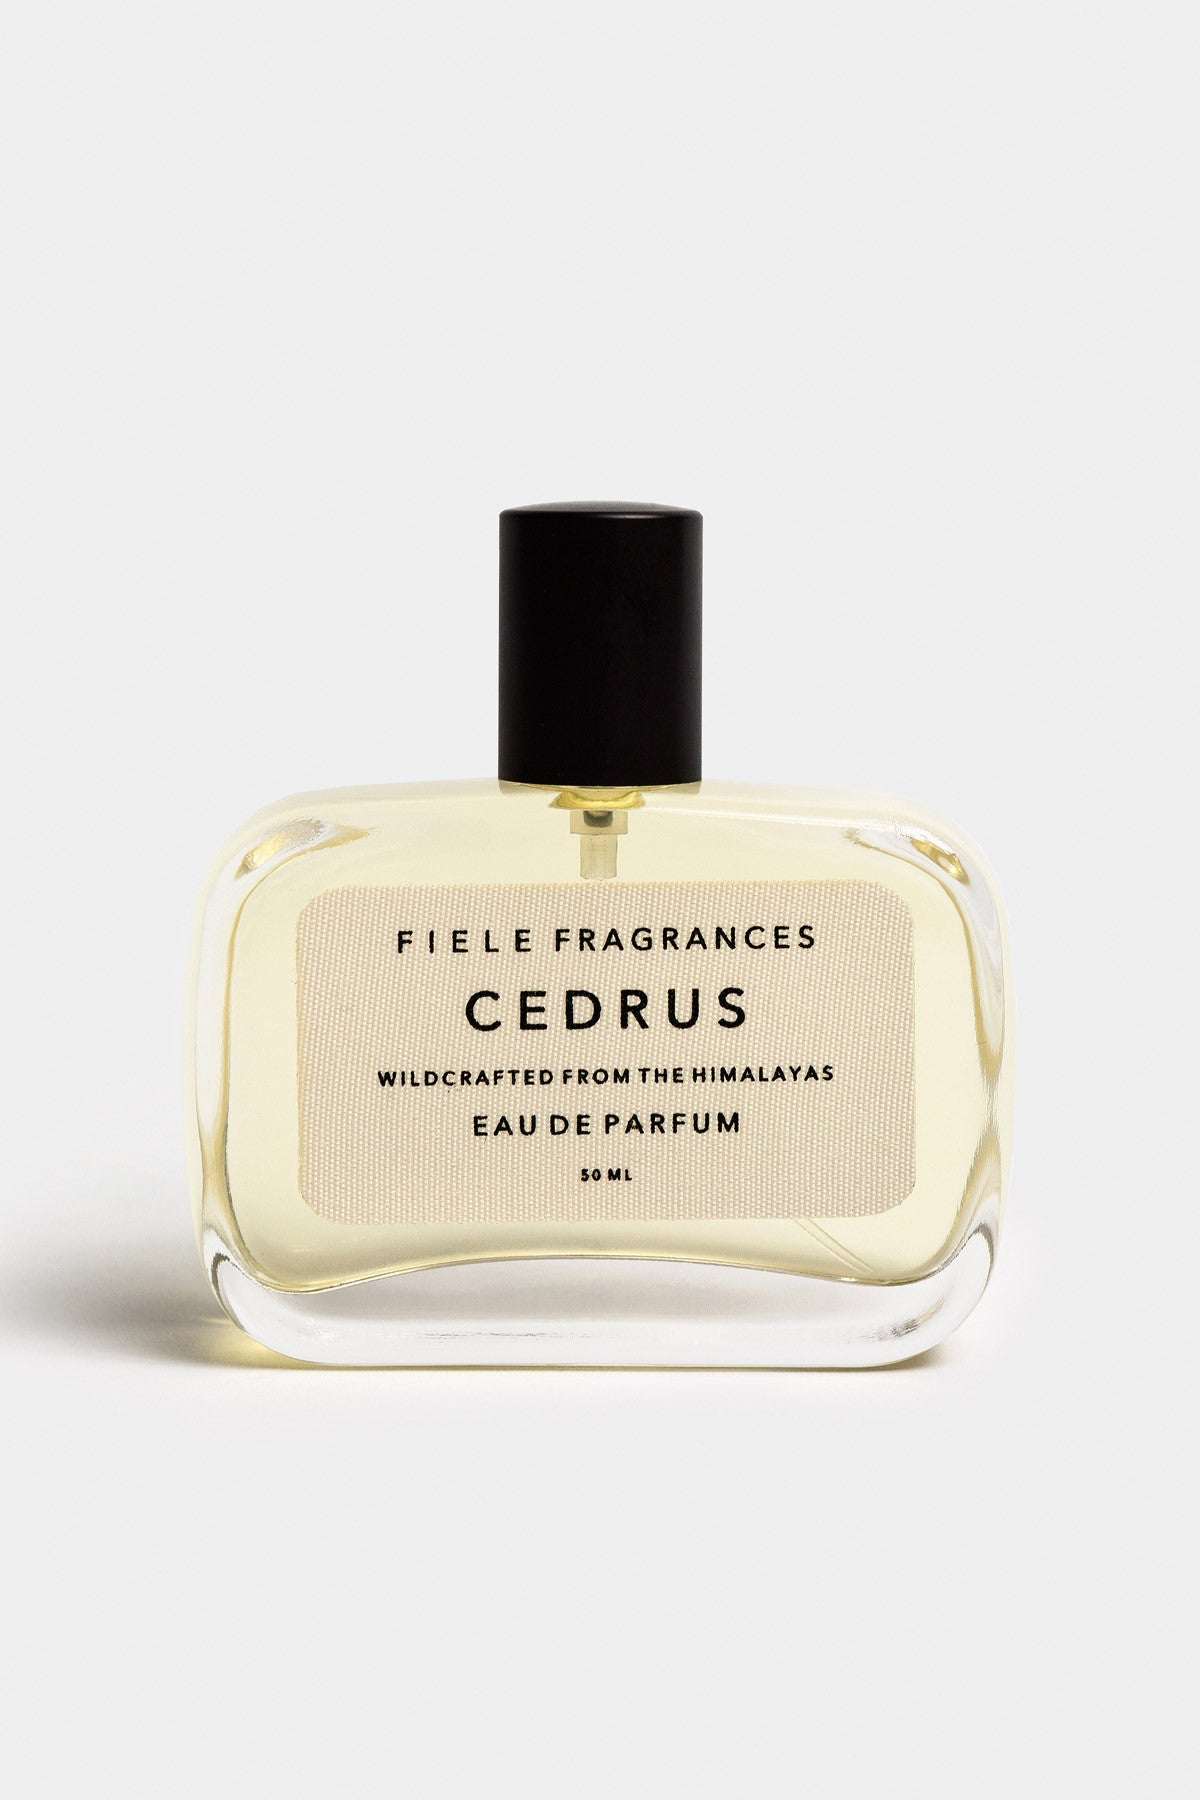 Fiele Fragrances eau de parfum in Cedrus - Vert & Vogue